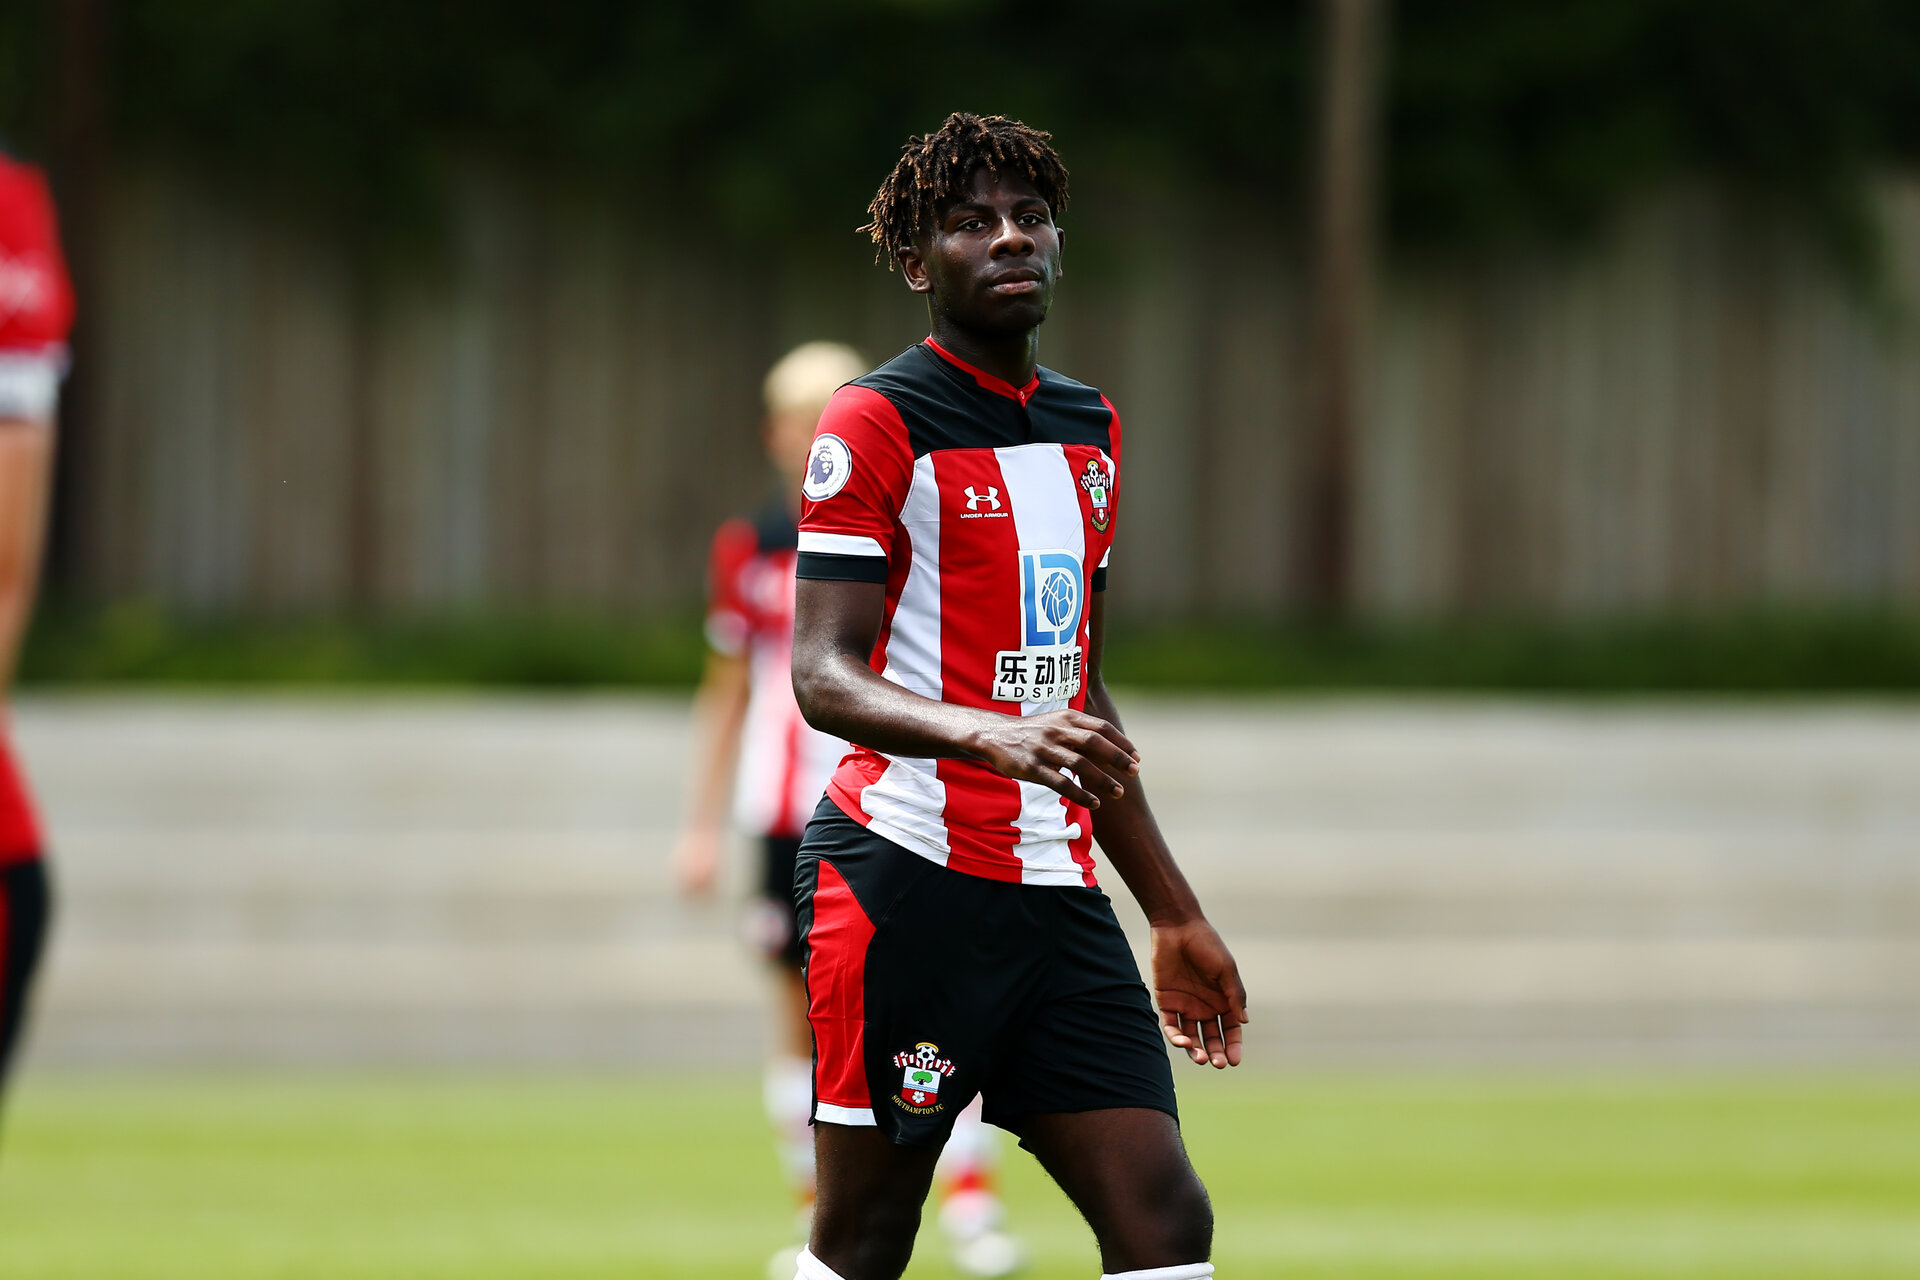 SOUTHAMPTON, ENGLAND - AUGUST 08: Alexandre Jankewitz during an U23's Pre Season friendly match between Southampton FC and QPR  pictured at Staplewood Training Ground on August 06, 2019 in Southampton, England. (Photo by James Bridle - Southampton FC/Southampton FC via Getty Images)